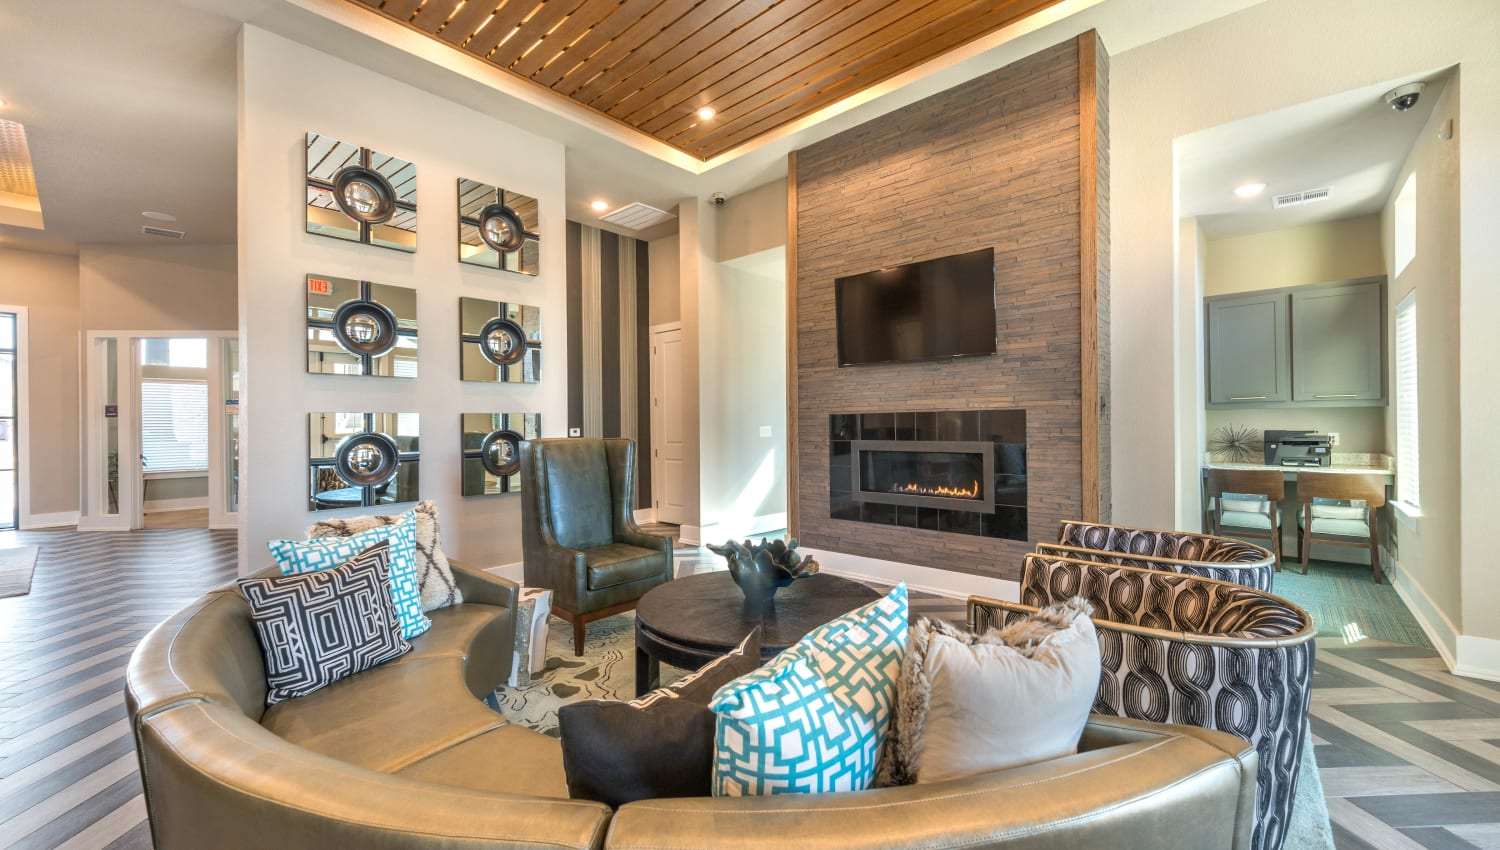 Lounge area in front of the fireplace in the clubhouse at Olympus Waterford in Keller, Texas